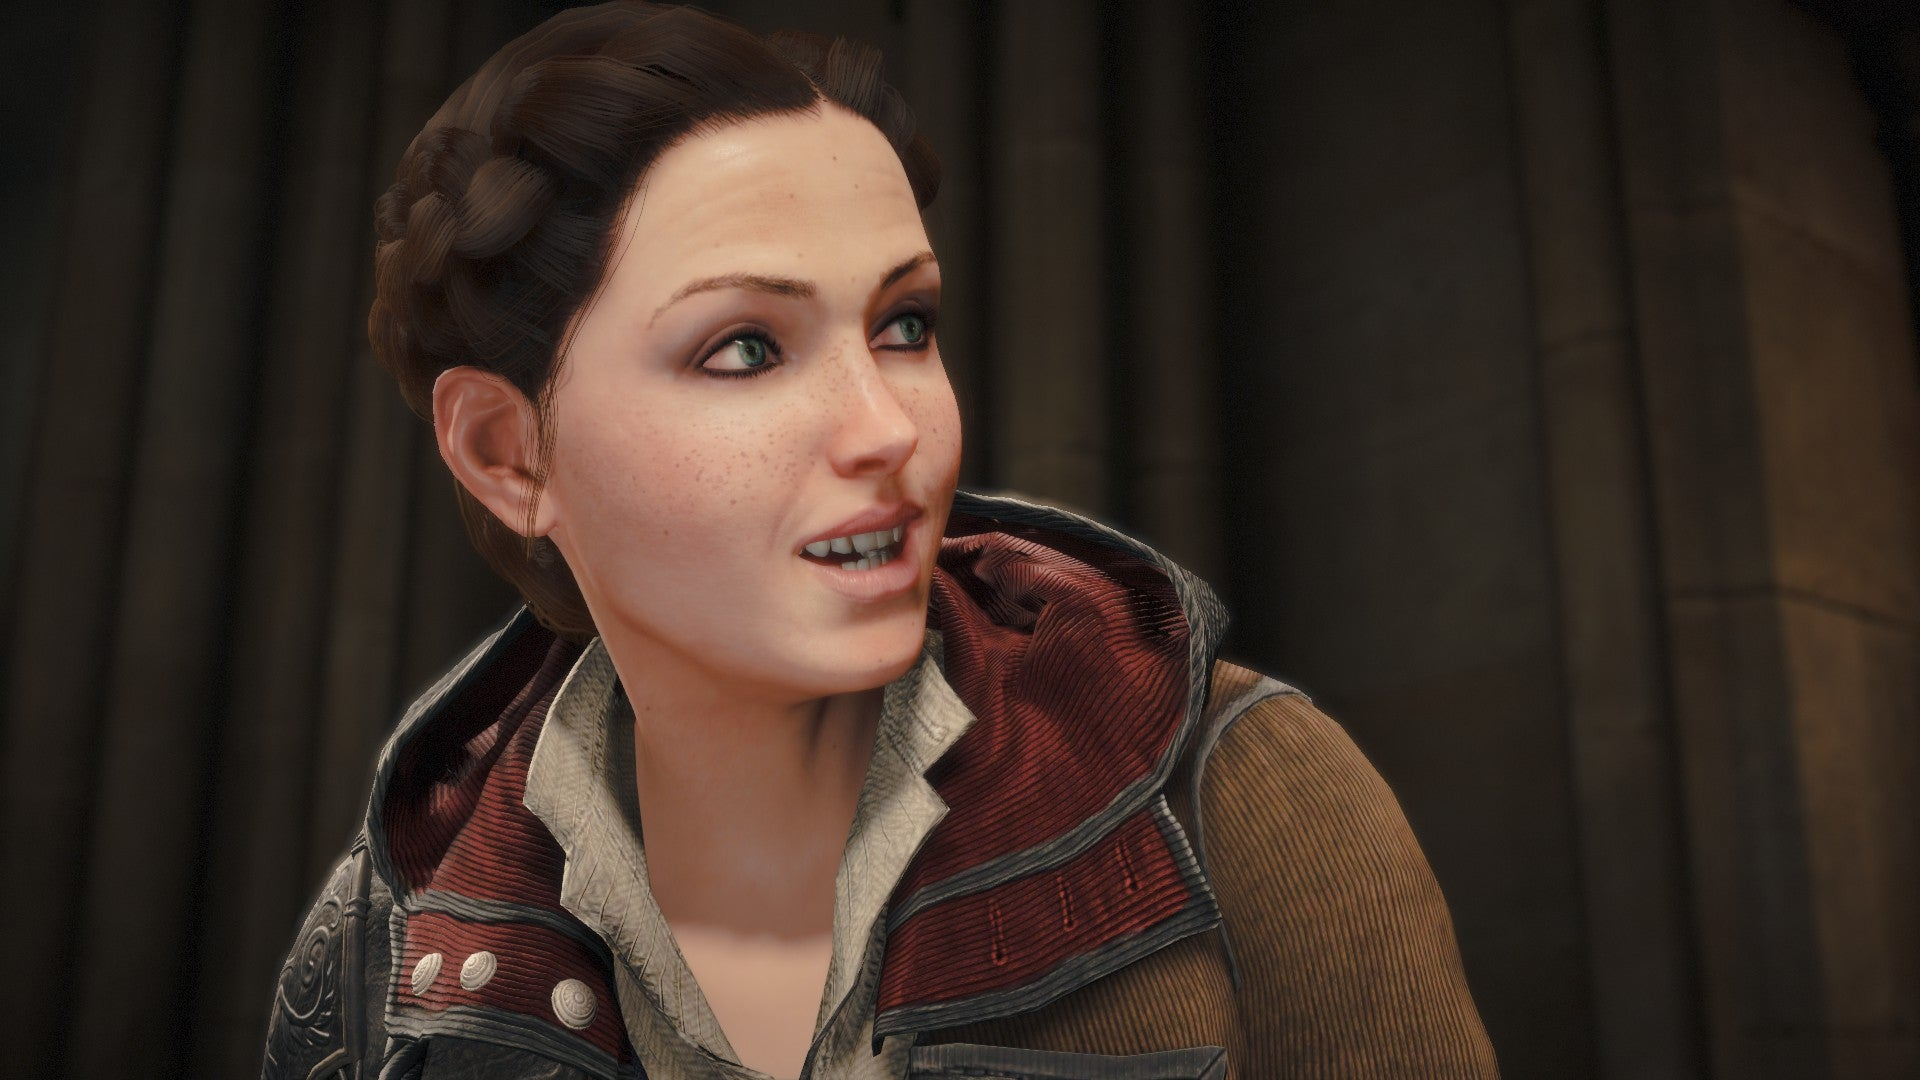 Luke's Top 10 Games Of 2015